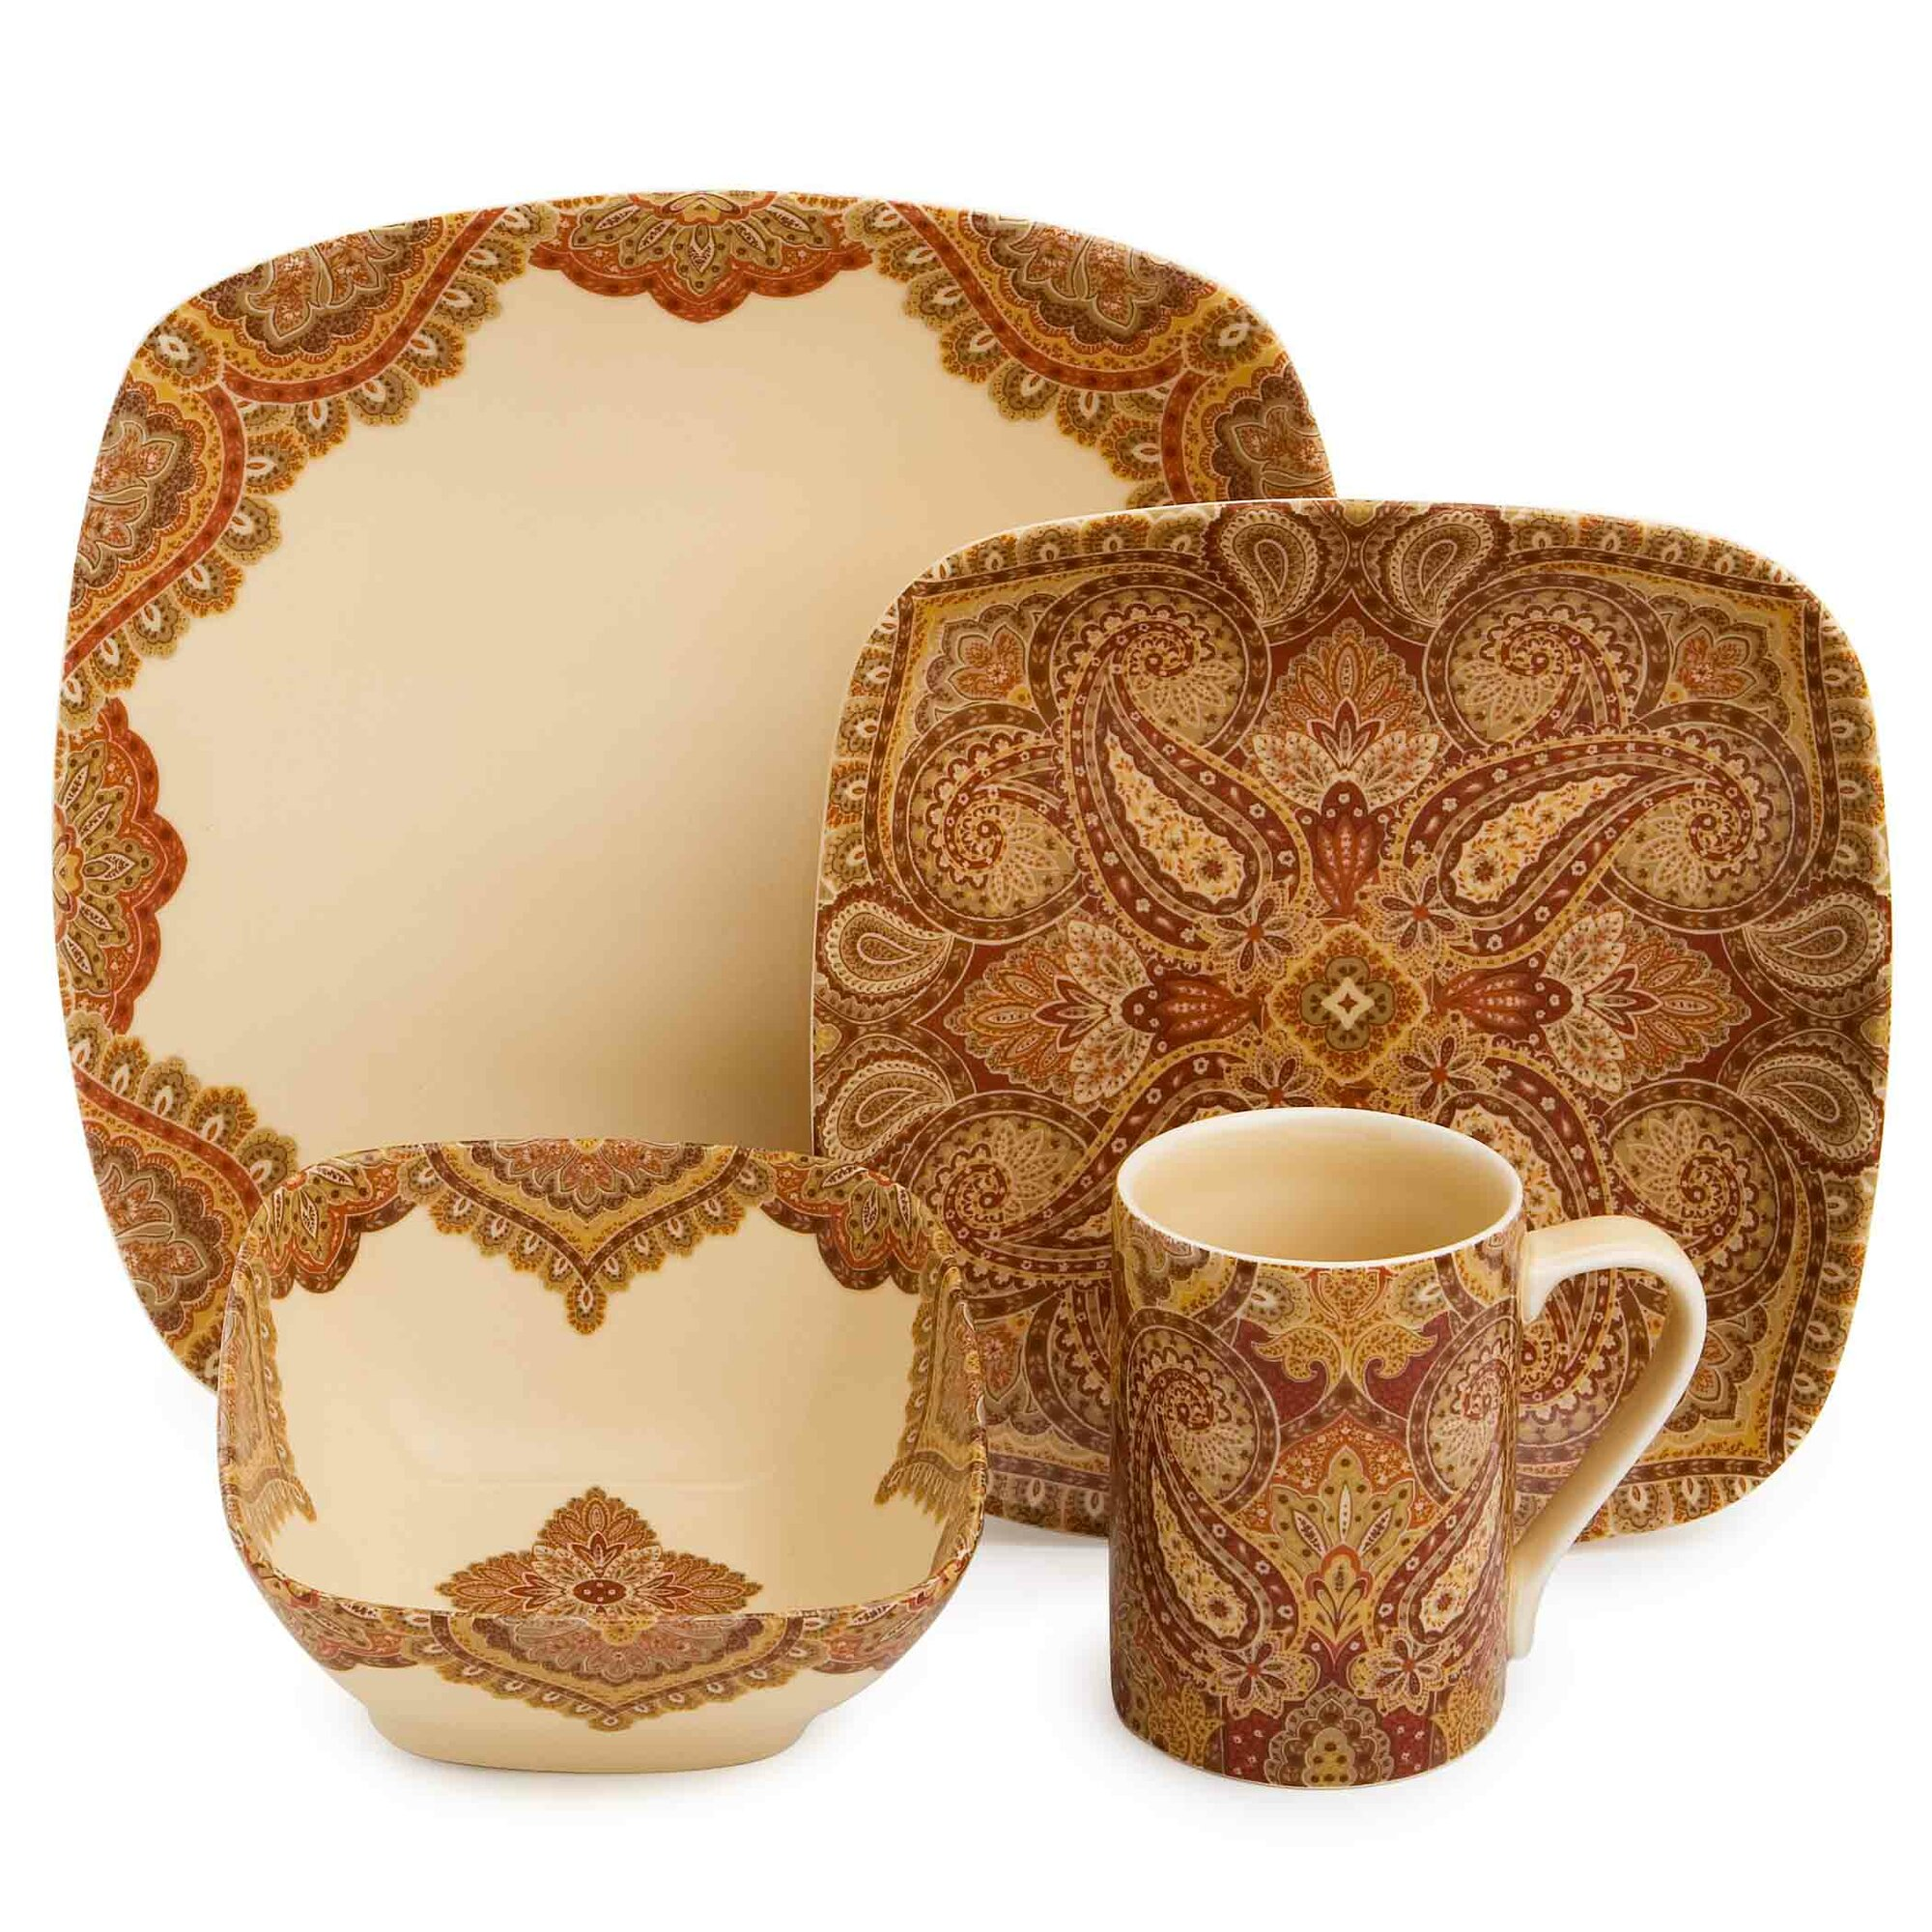 222 fifth spice road 16 piece dinnerware set ebay for 222 fifth dinnerware